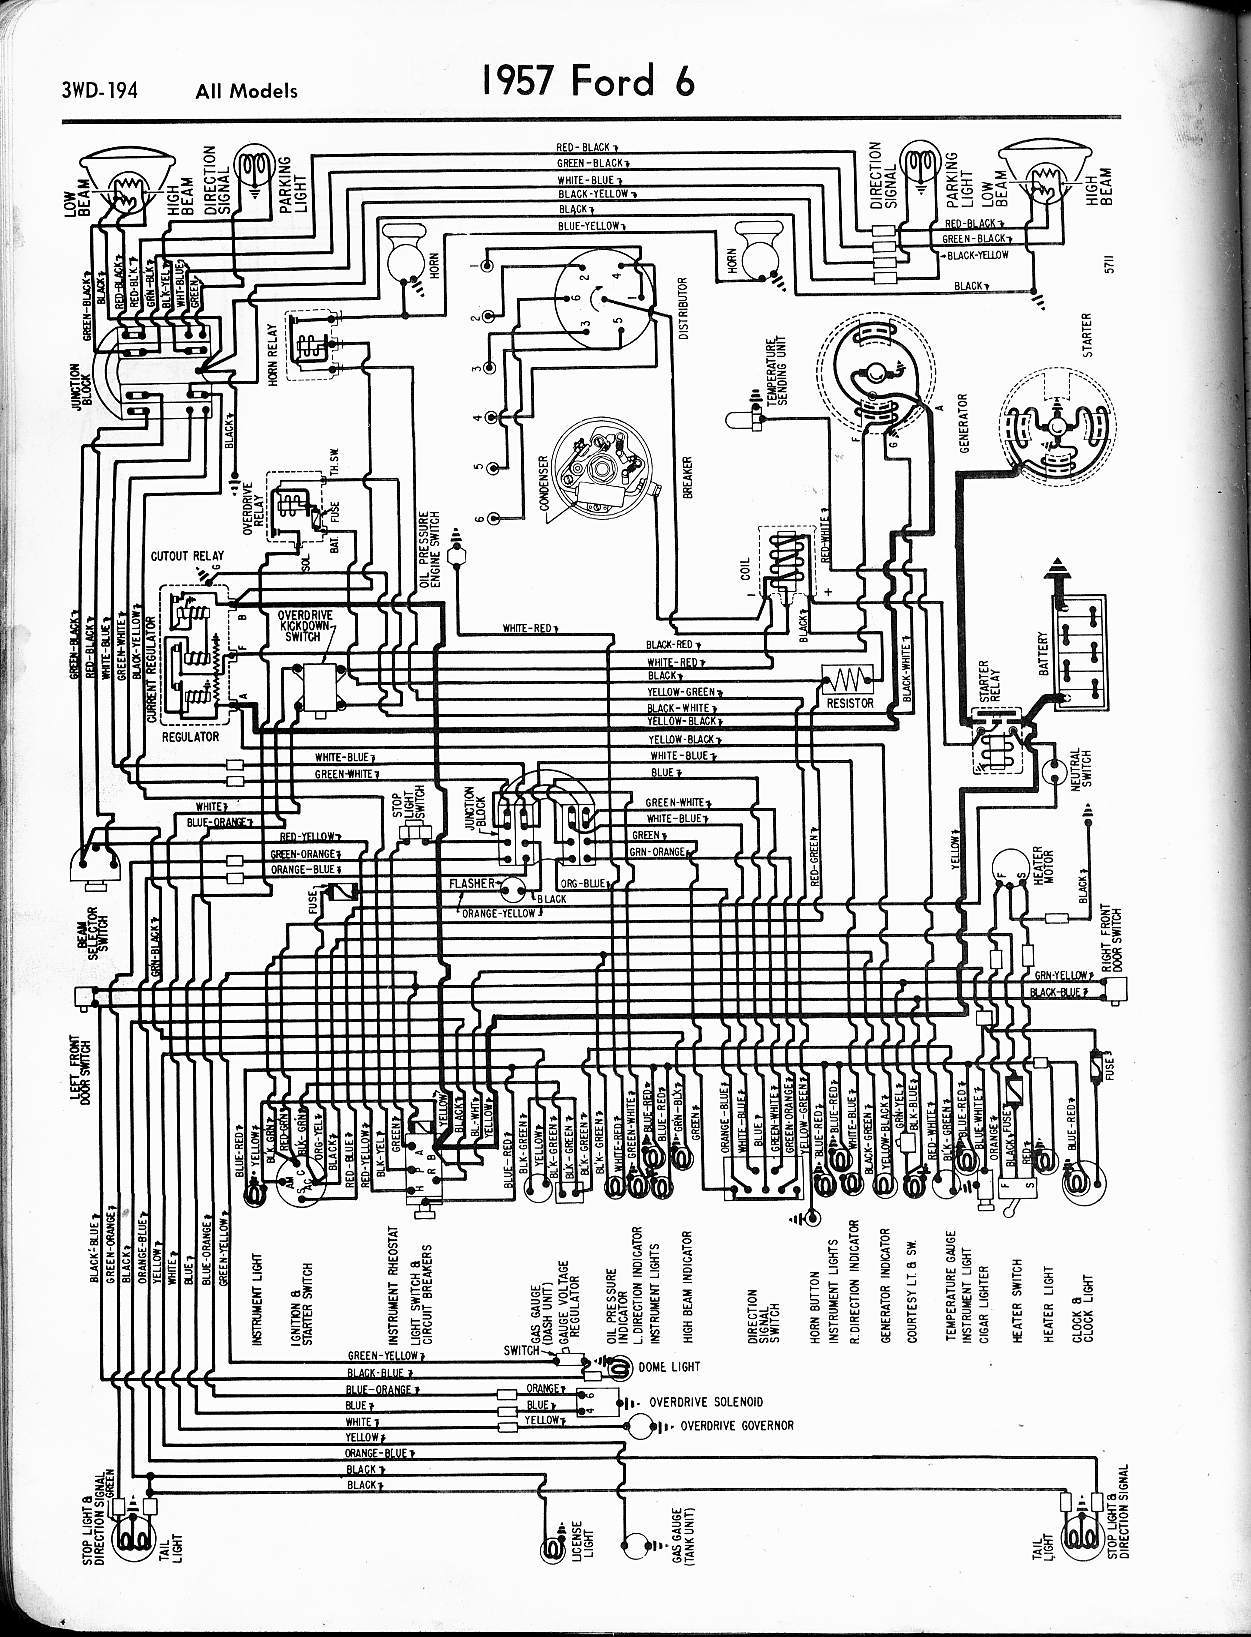 80 2010_07_23_013626_1957_ford_wiring_451fe1d3aafe571893763e4bcbb92521b2870e9d 1957 ford truck wiring diagram ford truck enthusiasts forums ford truck wiring diagrams at gsmportal.co